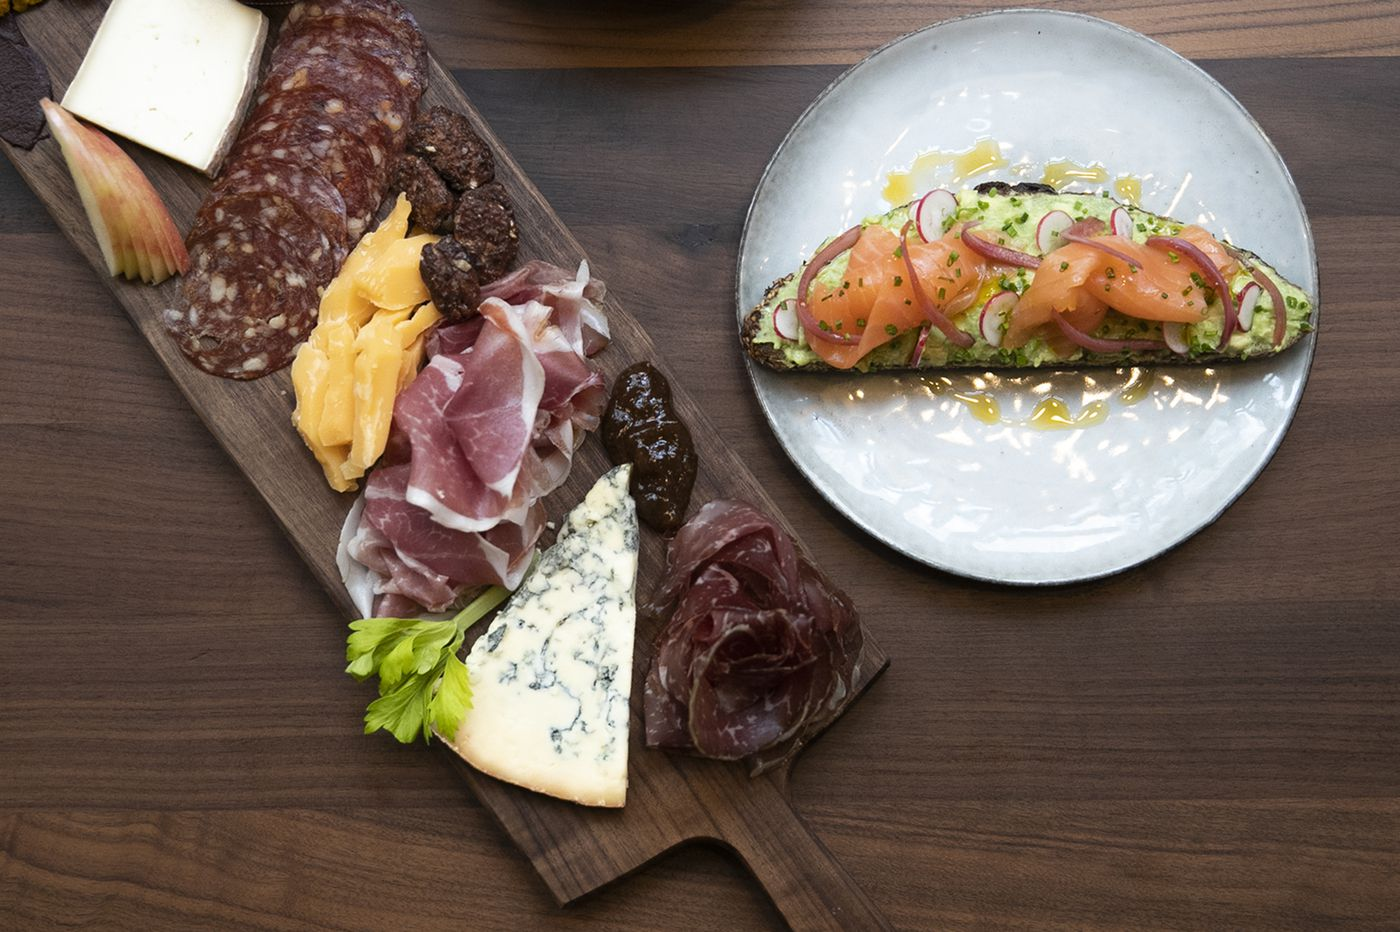 Alimentari review: Above Di Bruno's, Rittenhouse has a new lunch lounge and happy hour haven